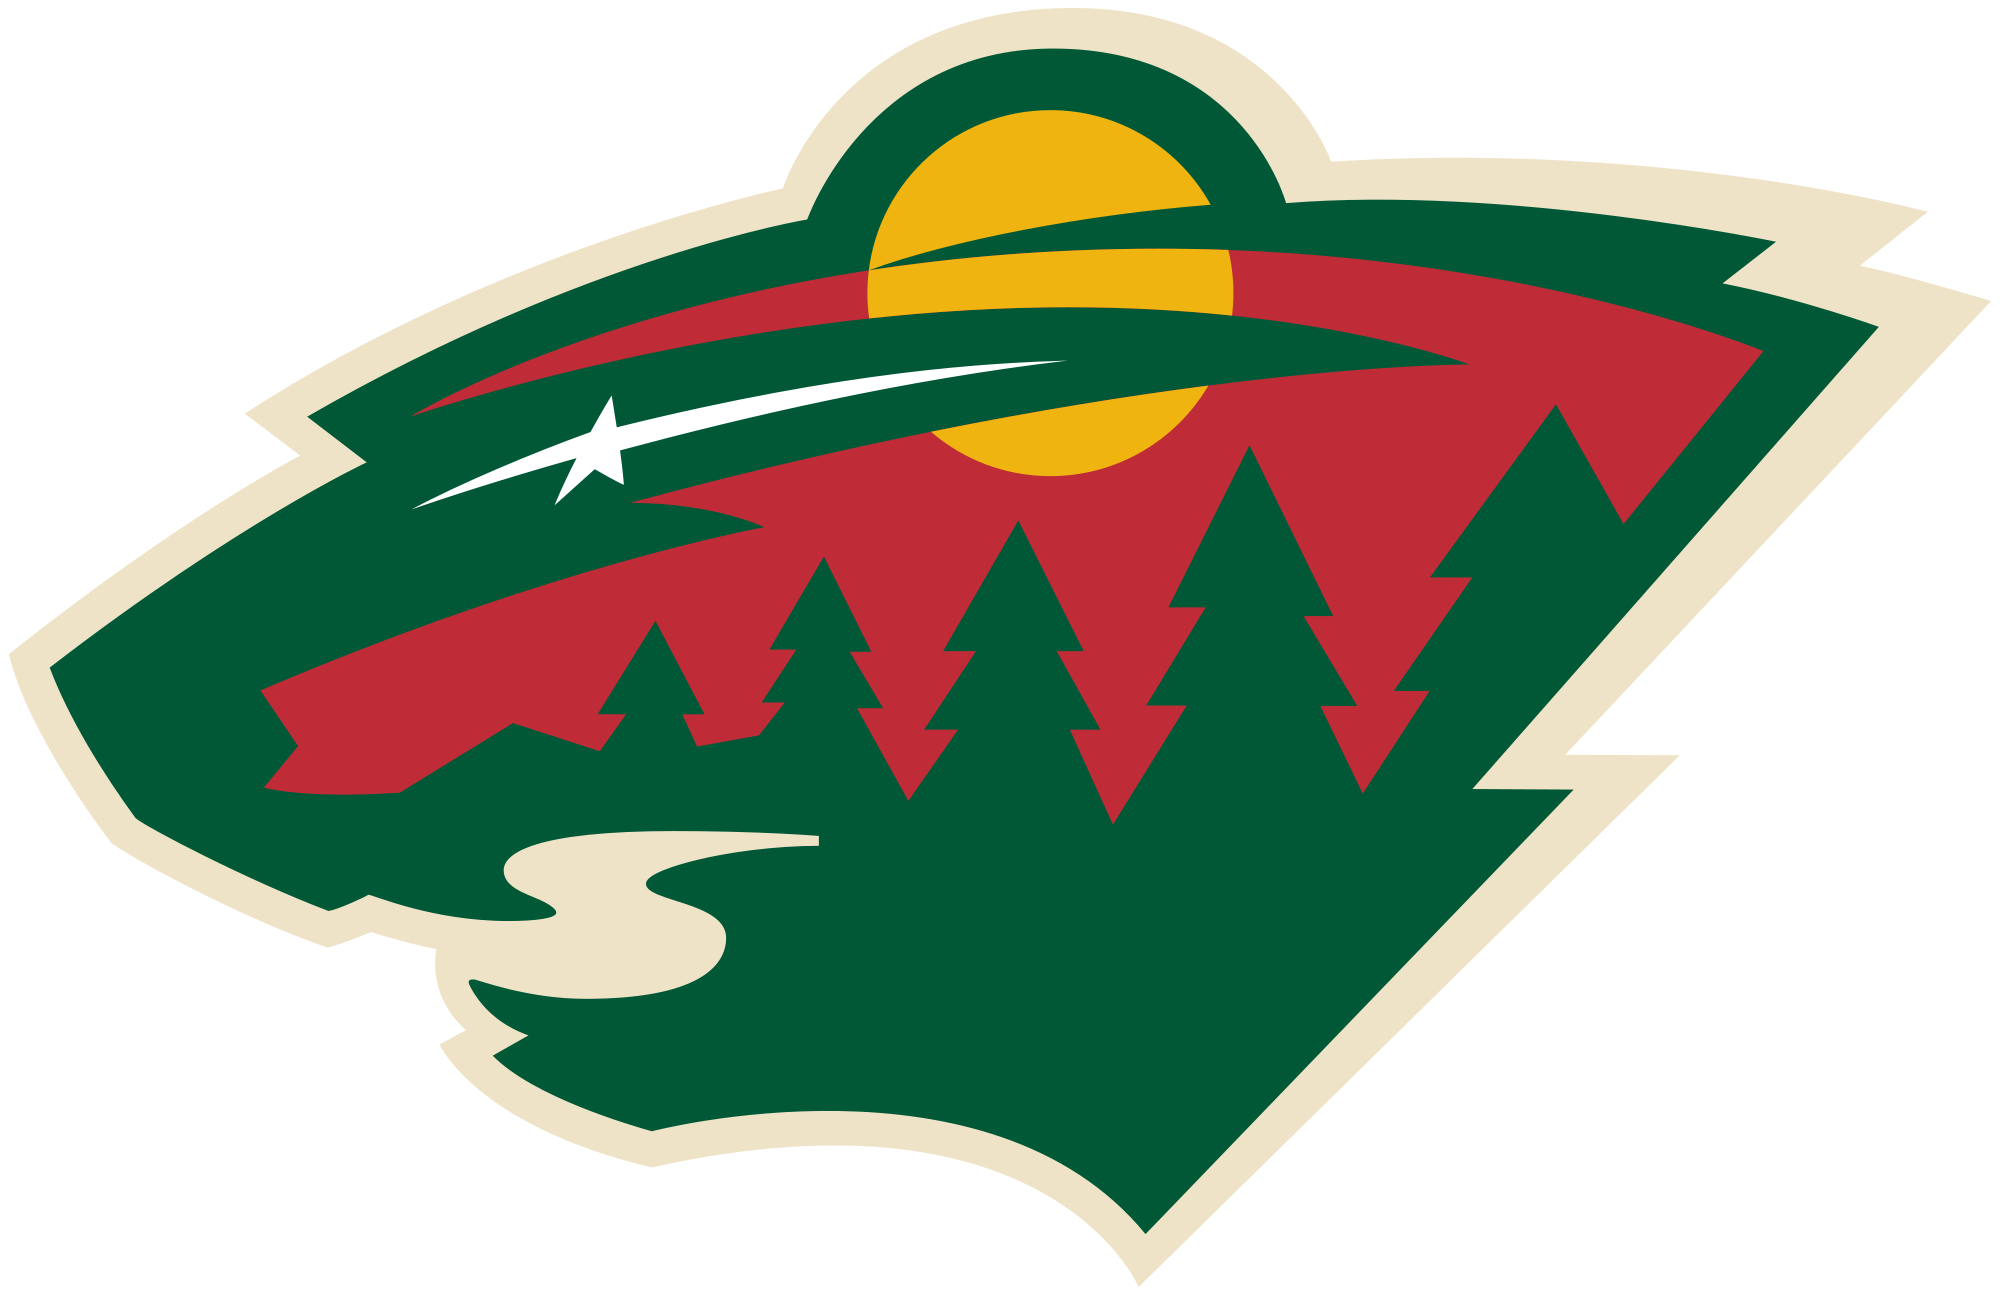 Minnesota drawing easy. Attend a wild game